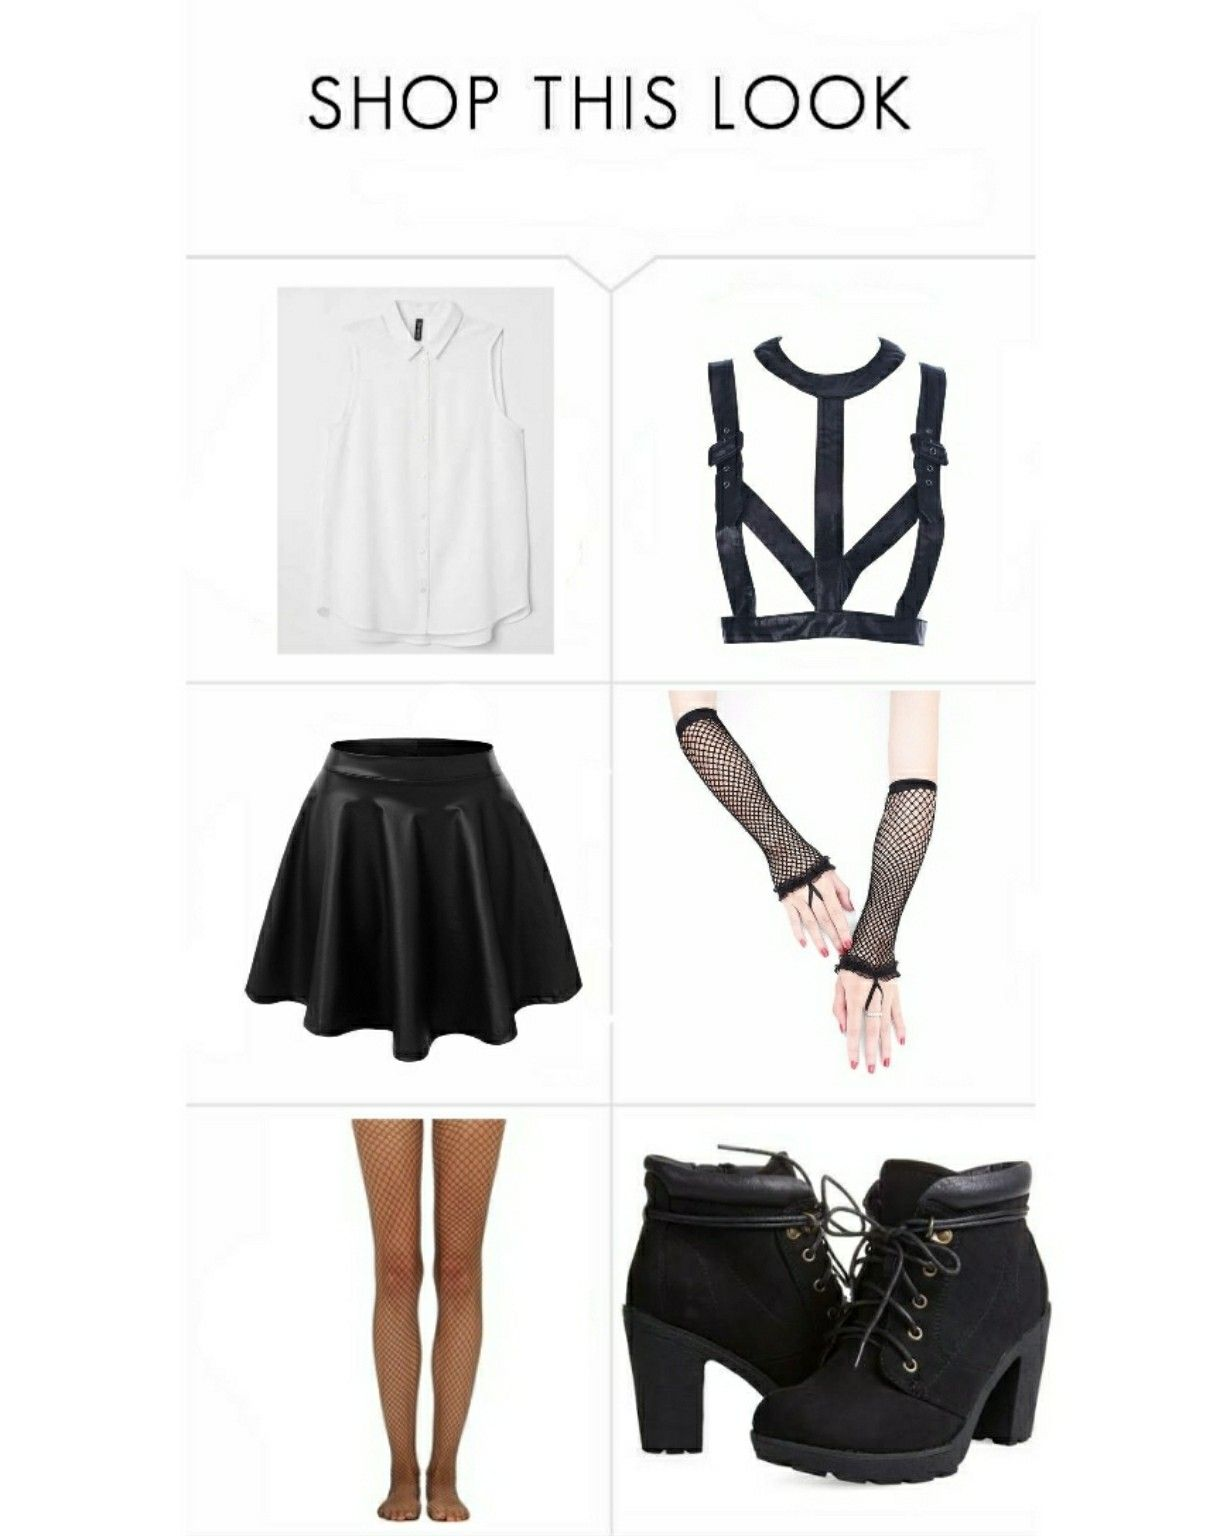 Best Of Me Stage Lisa First Outfit 1 211 U S D Bts Inspired